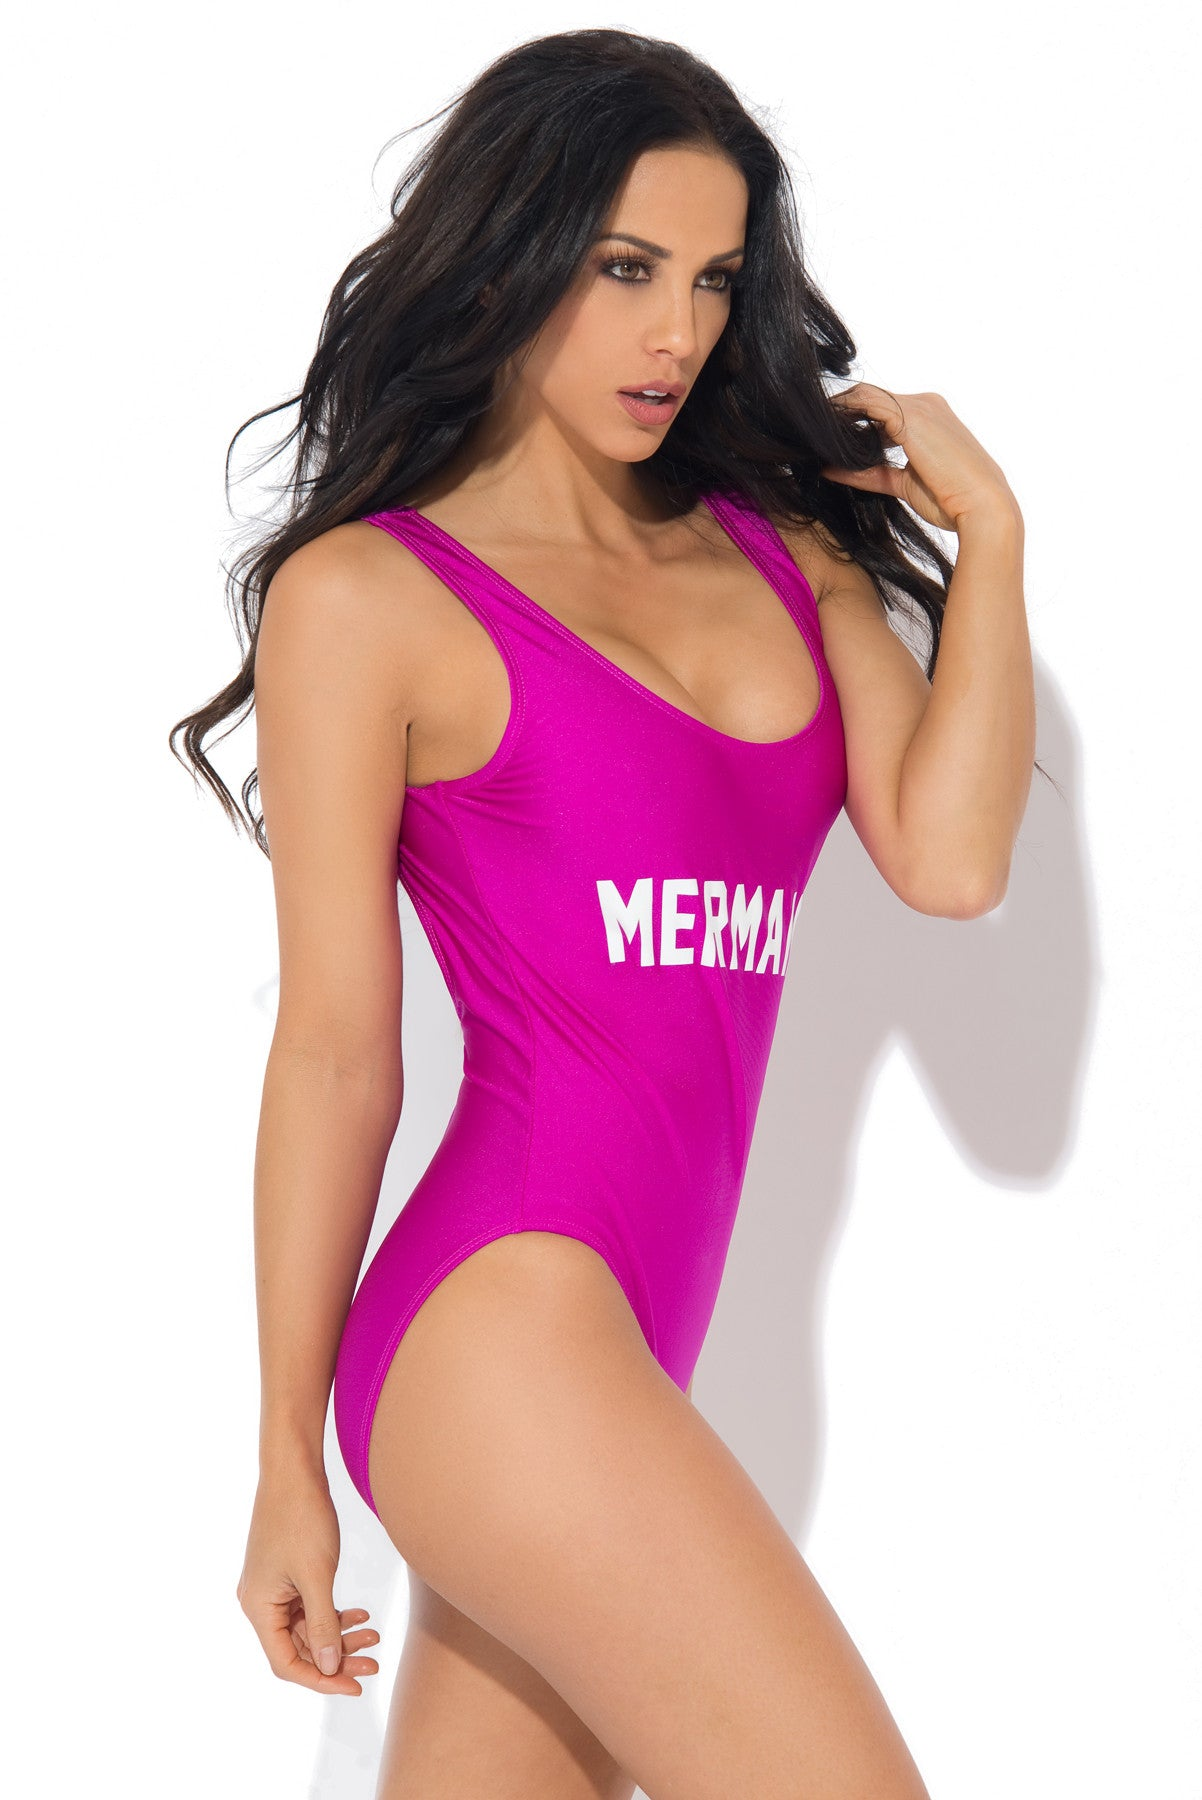 Mermaid One Piece Swimsuit PURPLE - Fashion Effect Store  - 2